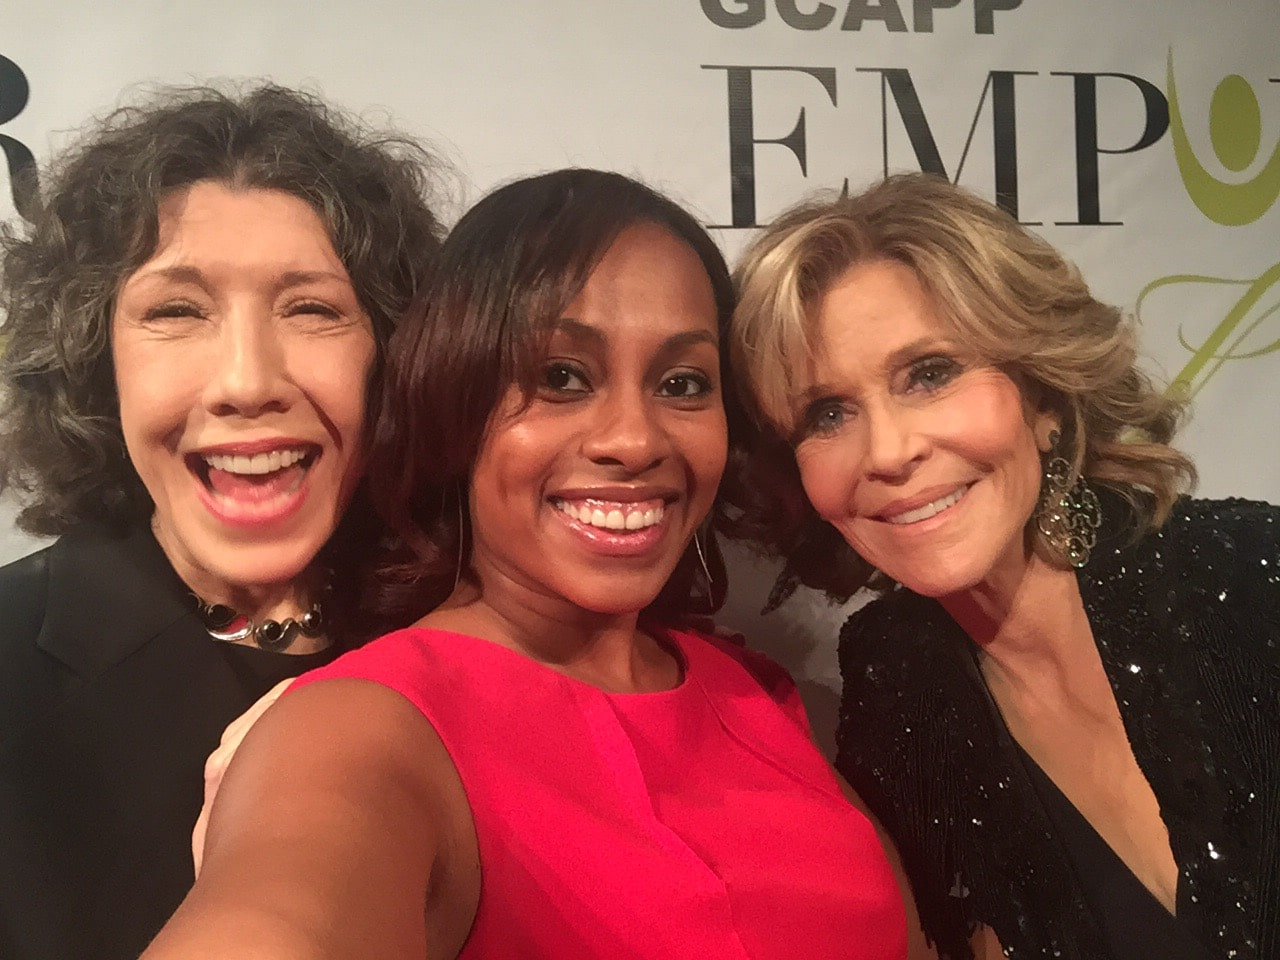 Lily Tomlin, Jane Fonda and Atlanta Blogger Ari Adams at GCAPP Empower Party in Atlanta GA